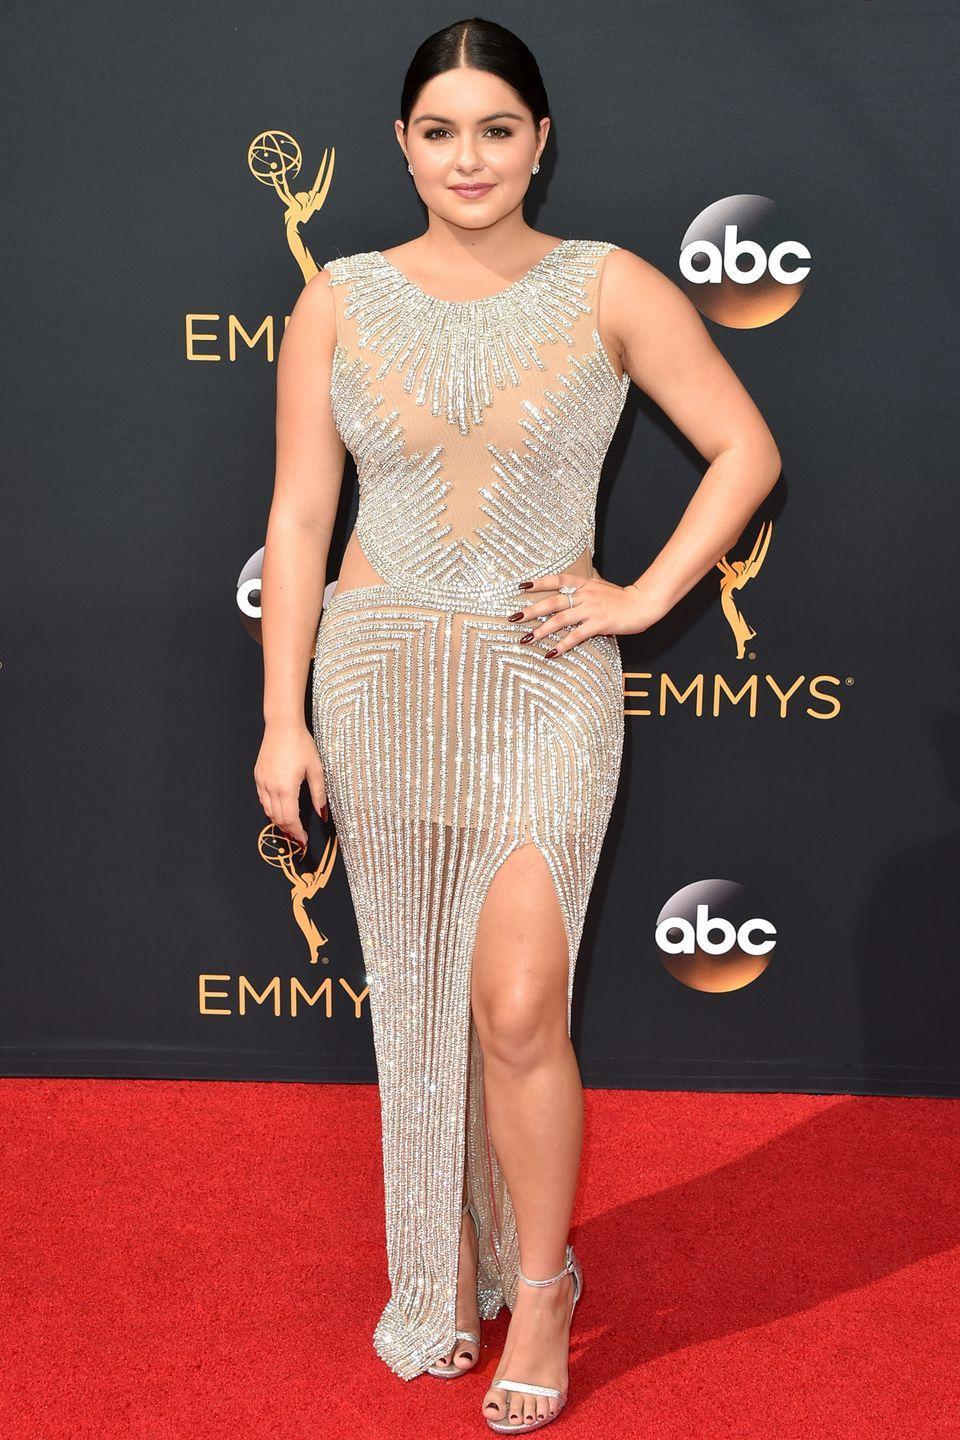 <p>Winter arrived at the 2016 Emmys in this dazzling Yousef Al-Jasmi dress. It was also seen on the likes of Kylie Jenner in a shorter version that same year.</p>